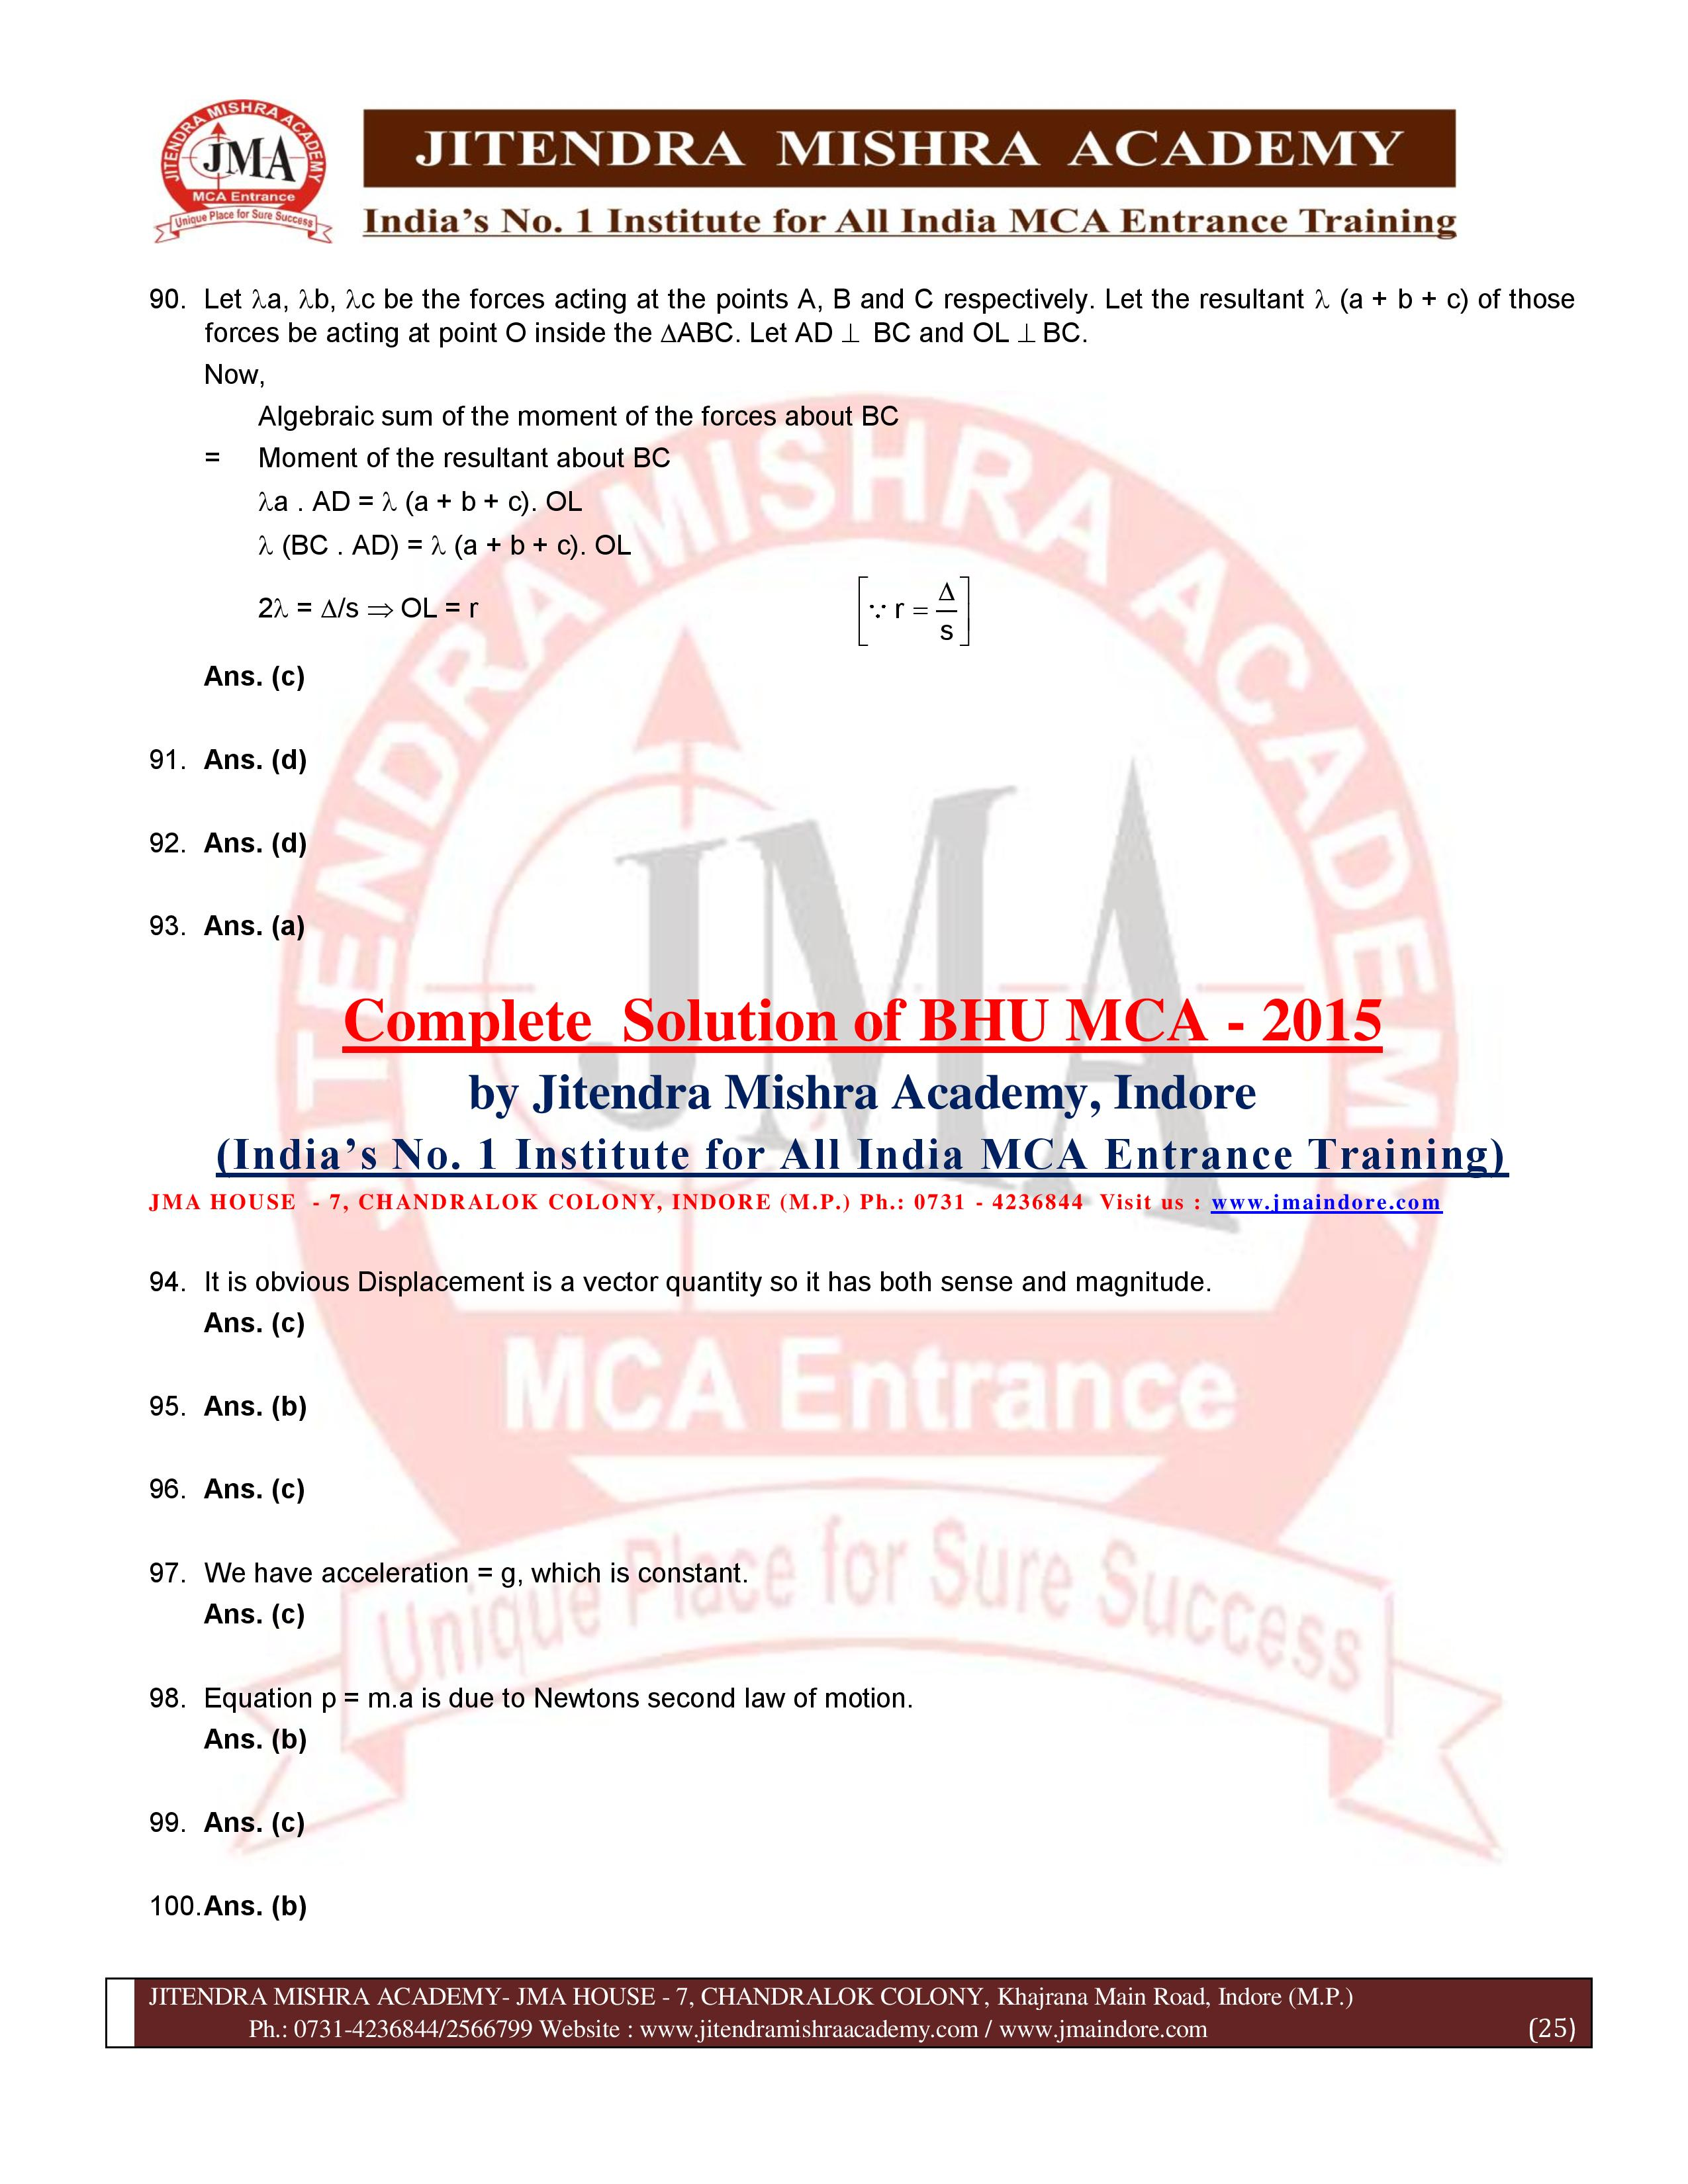 BHU 2015 SOLUTION (SET - 1) (29.06.16)-page-025